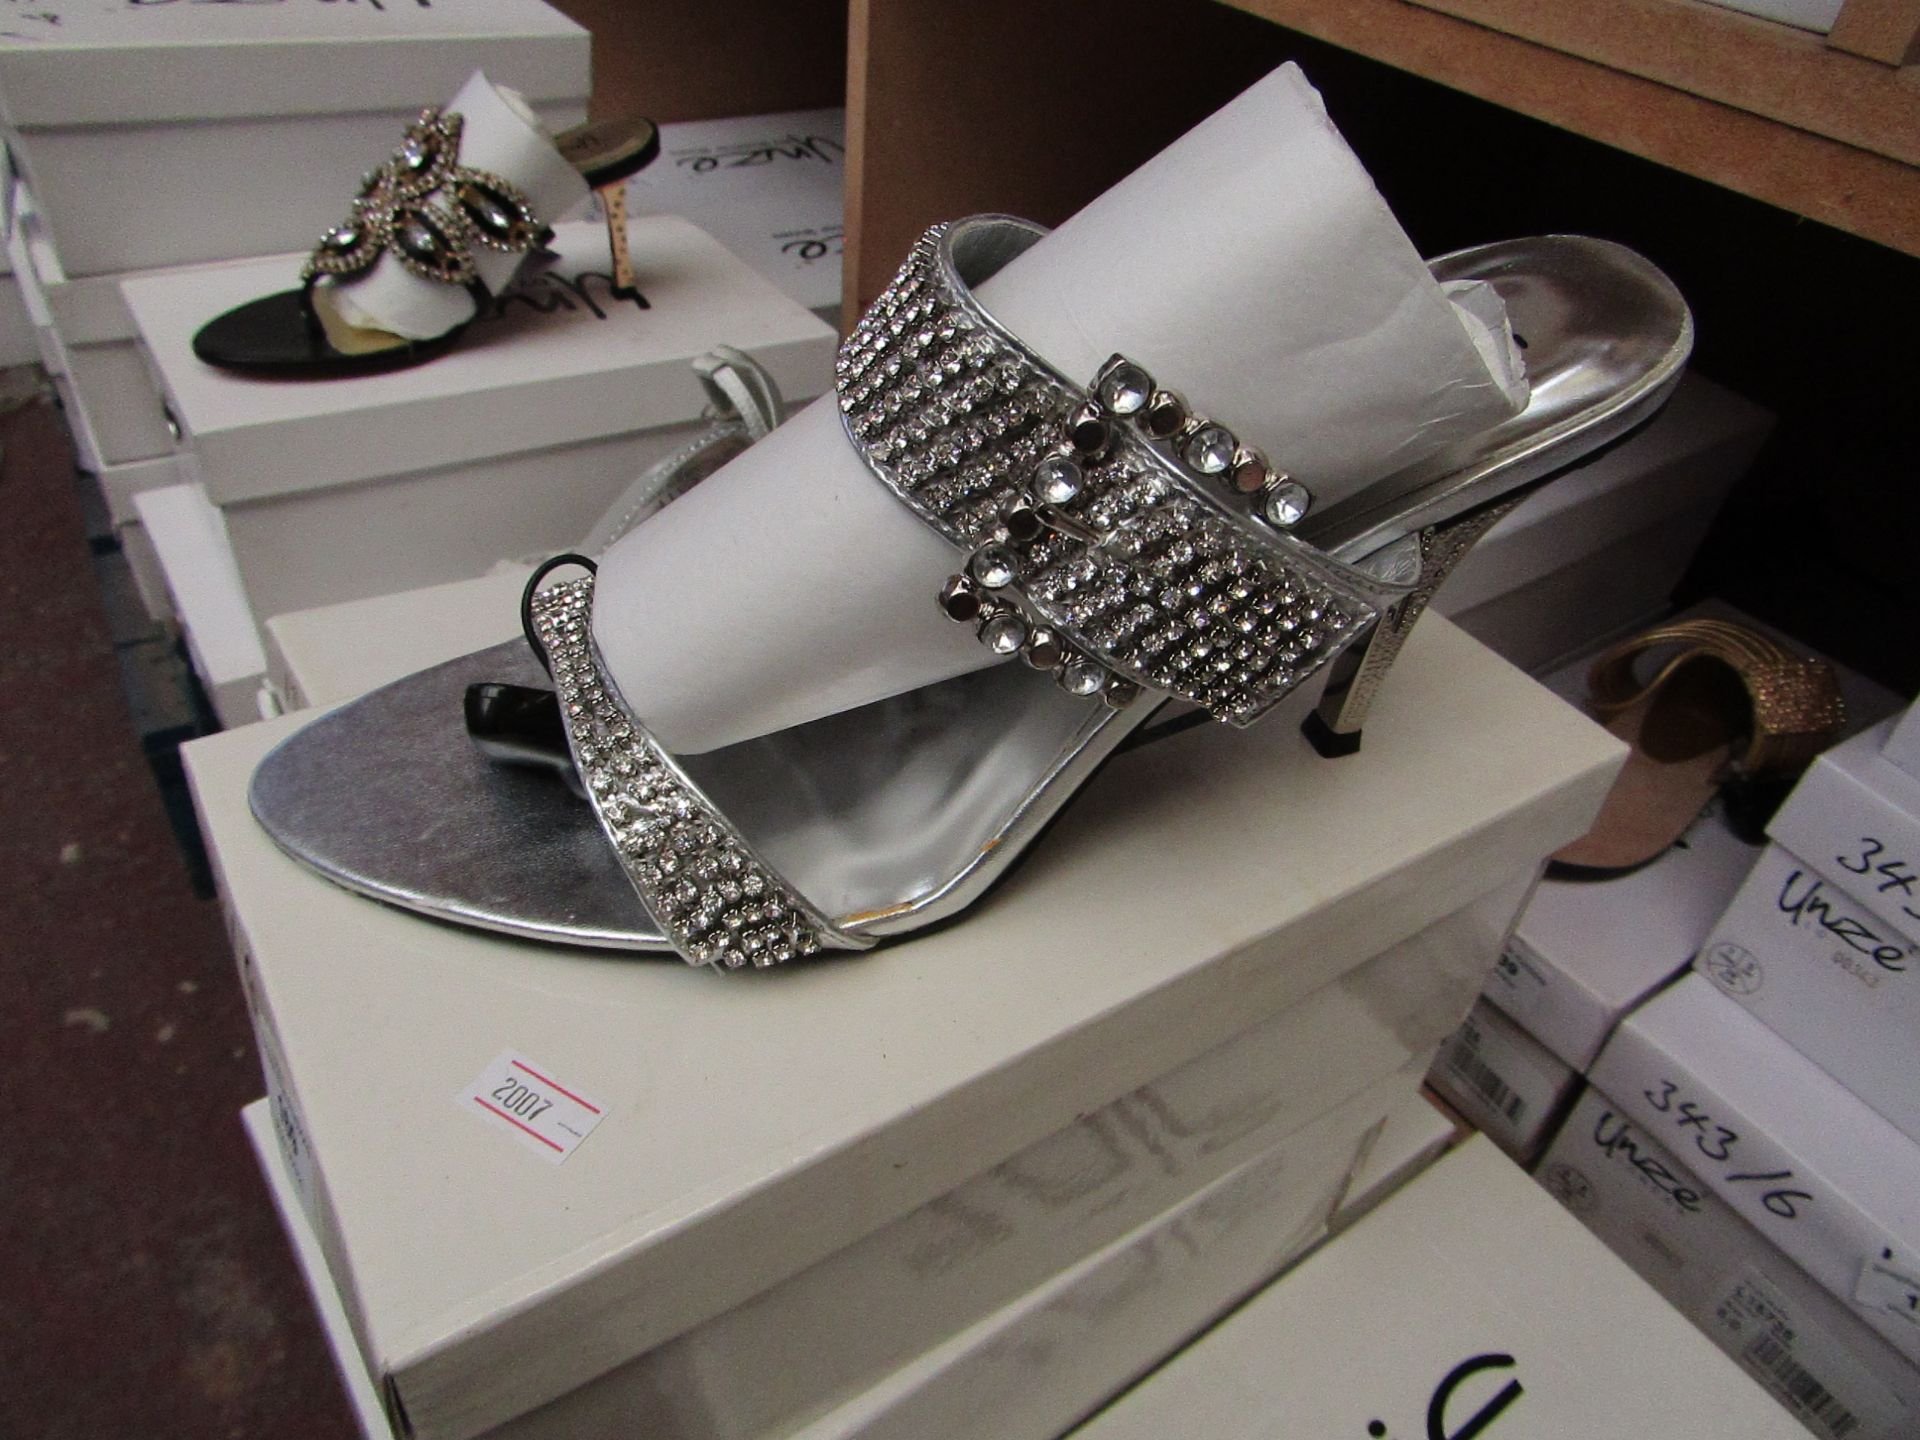 Unze by Shalamar Shoes Ladies Silver & Diamante Shoes size 7 new & boxed see image for design